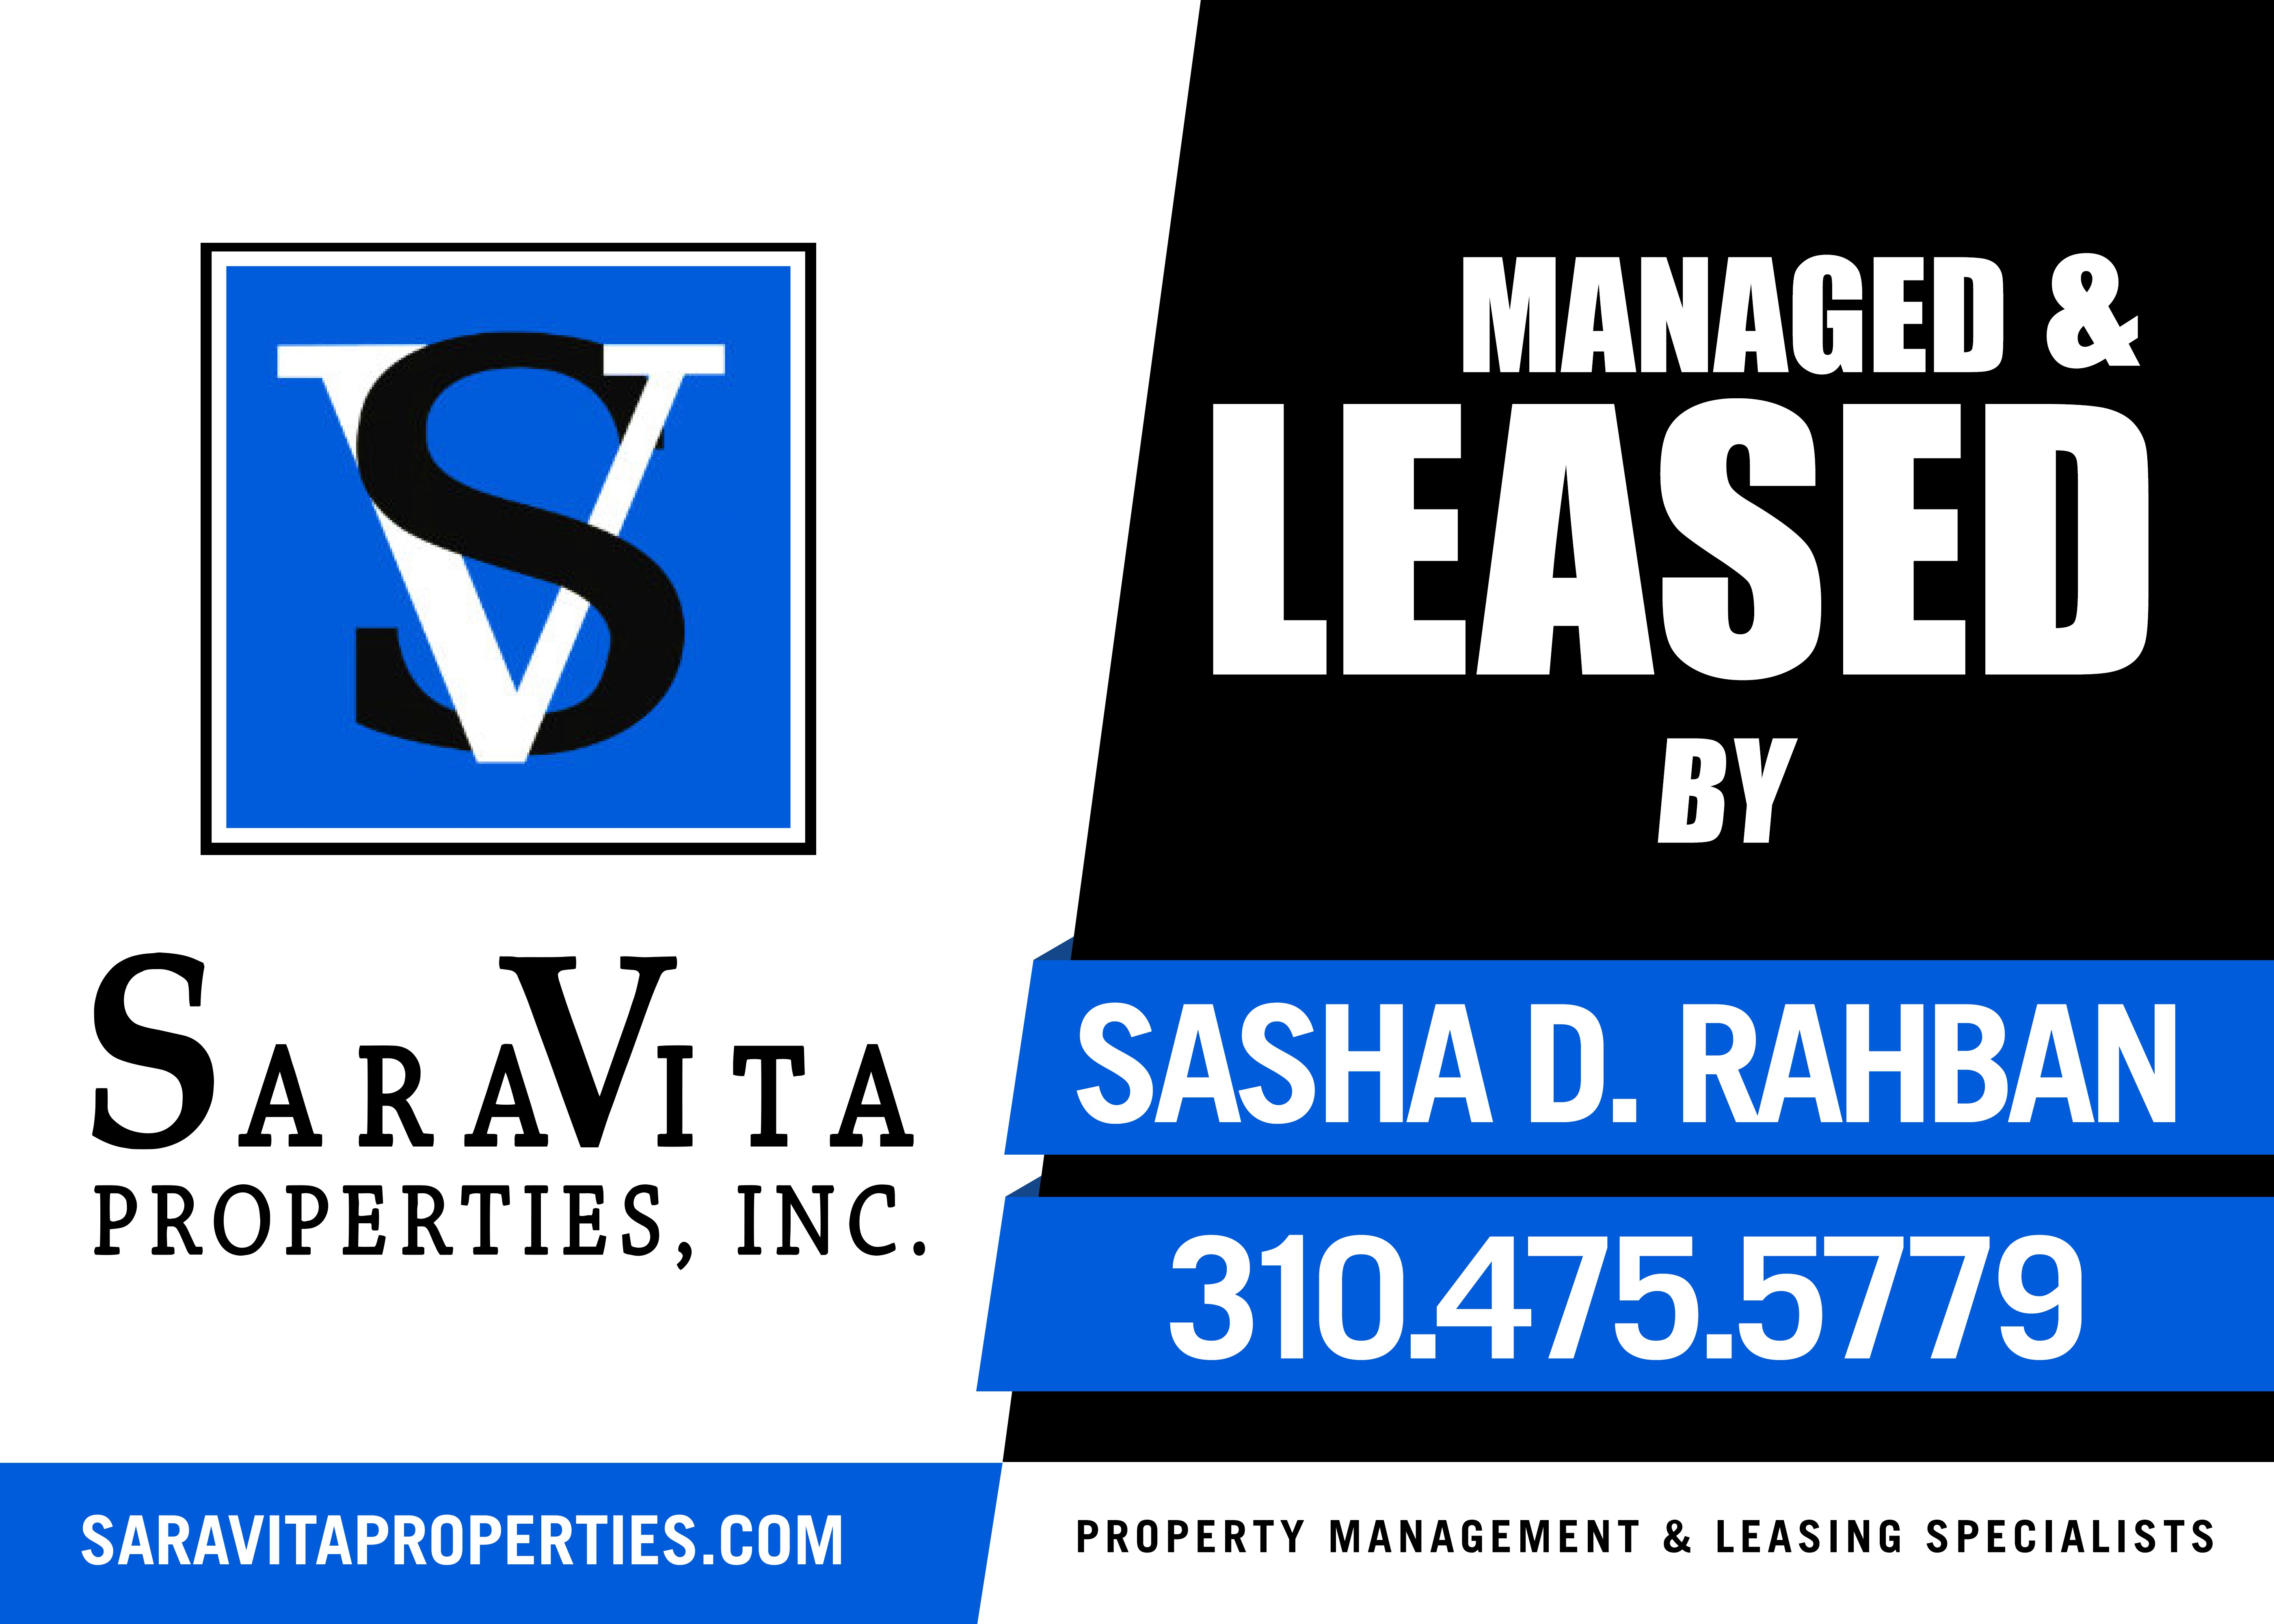 Tech Savy Real Estate Company looking for new For Lease/Managed by Sign